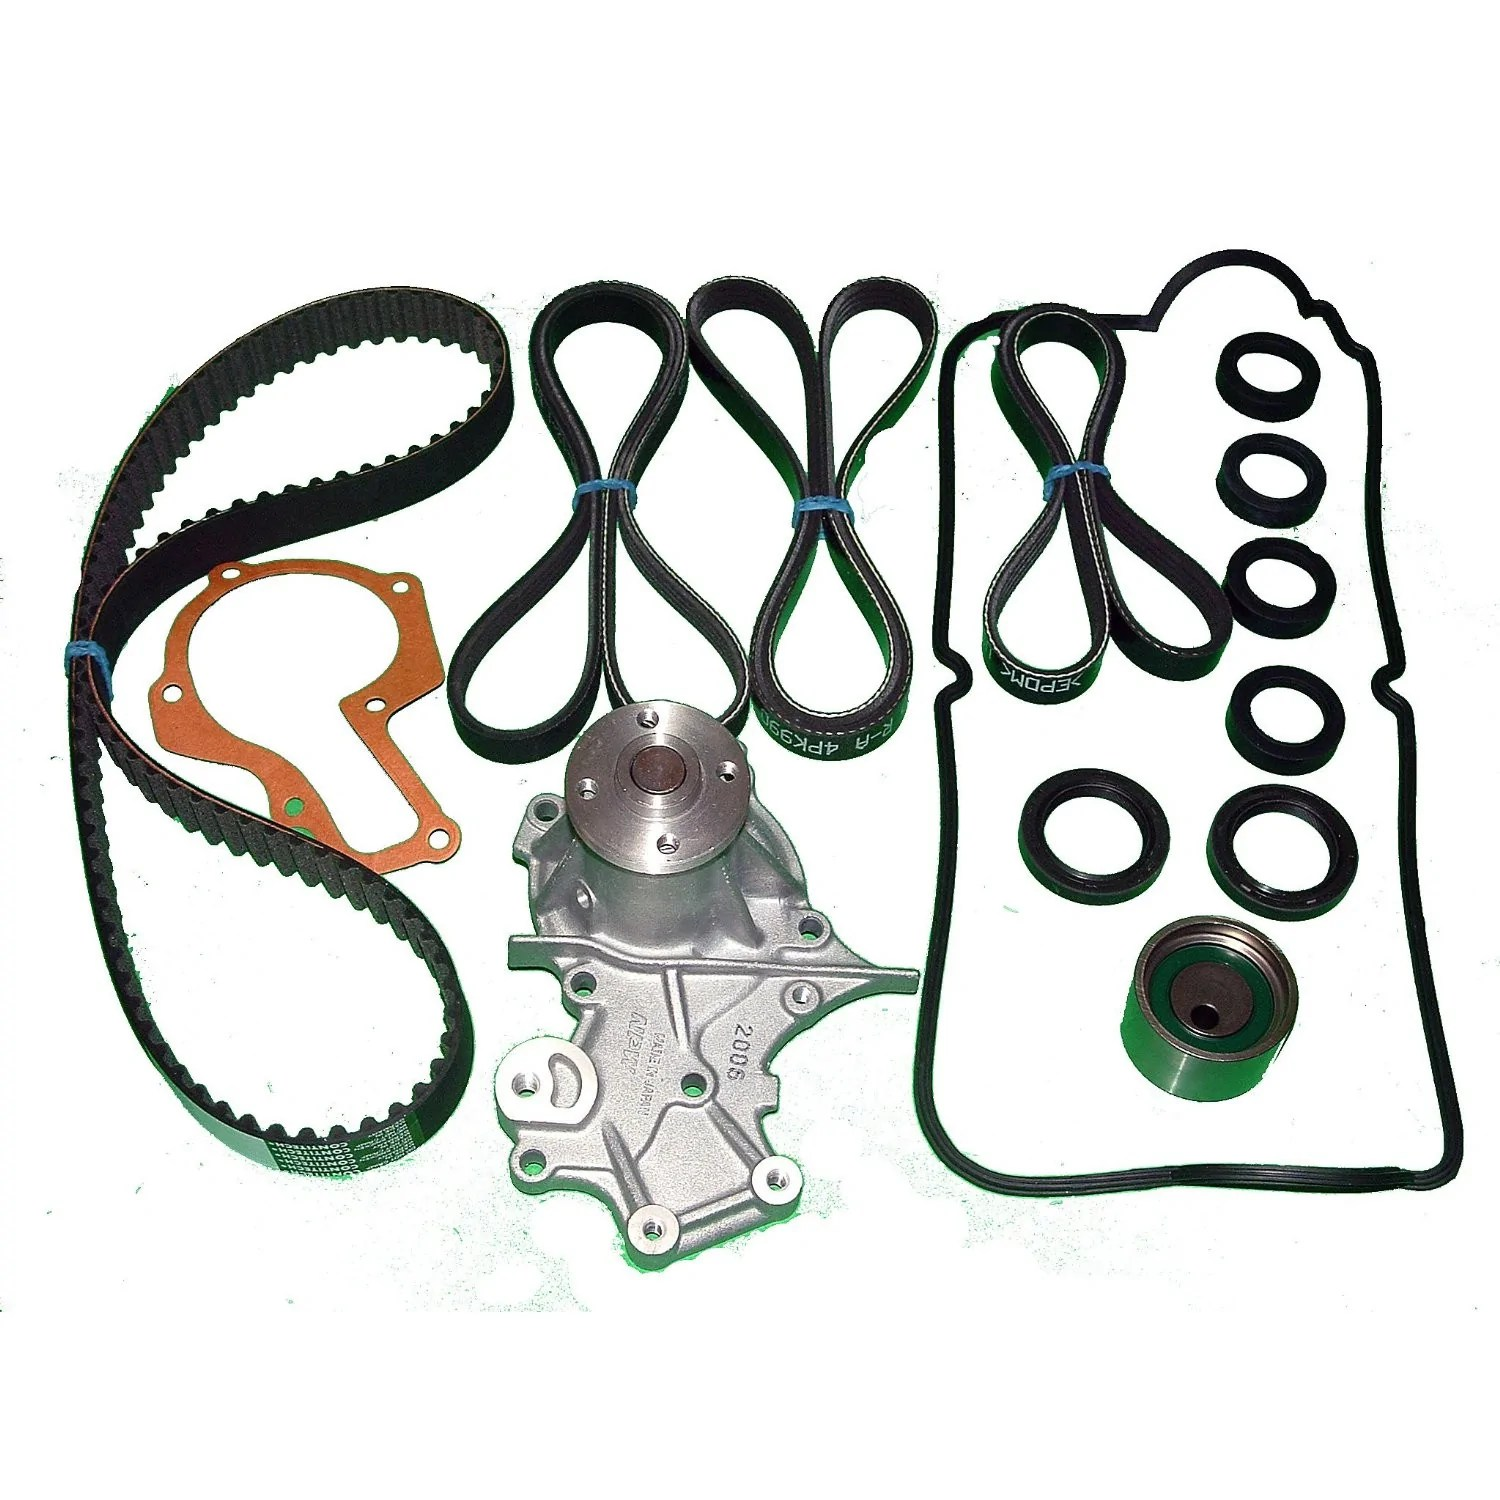 medium resolution of timing belt kit suzuki esteem 1 6l 2000 1999 1998 1997 1996 1995